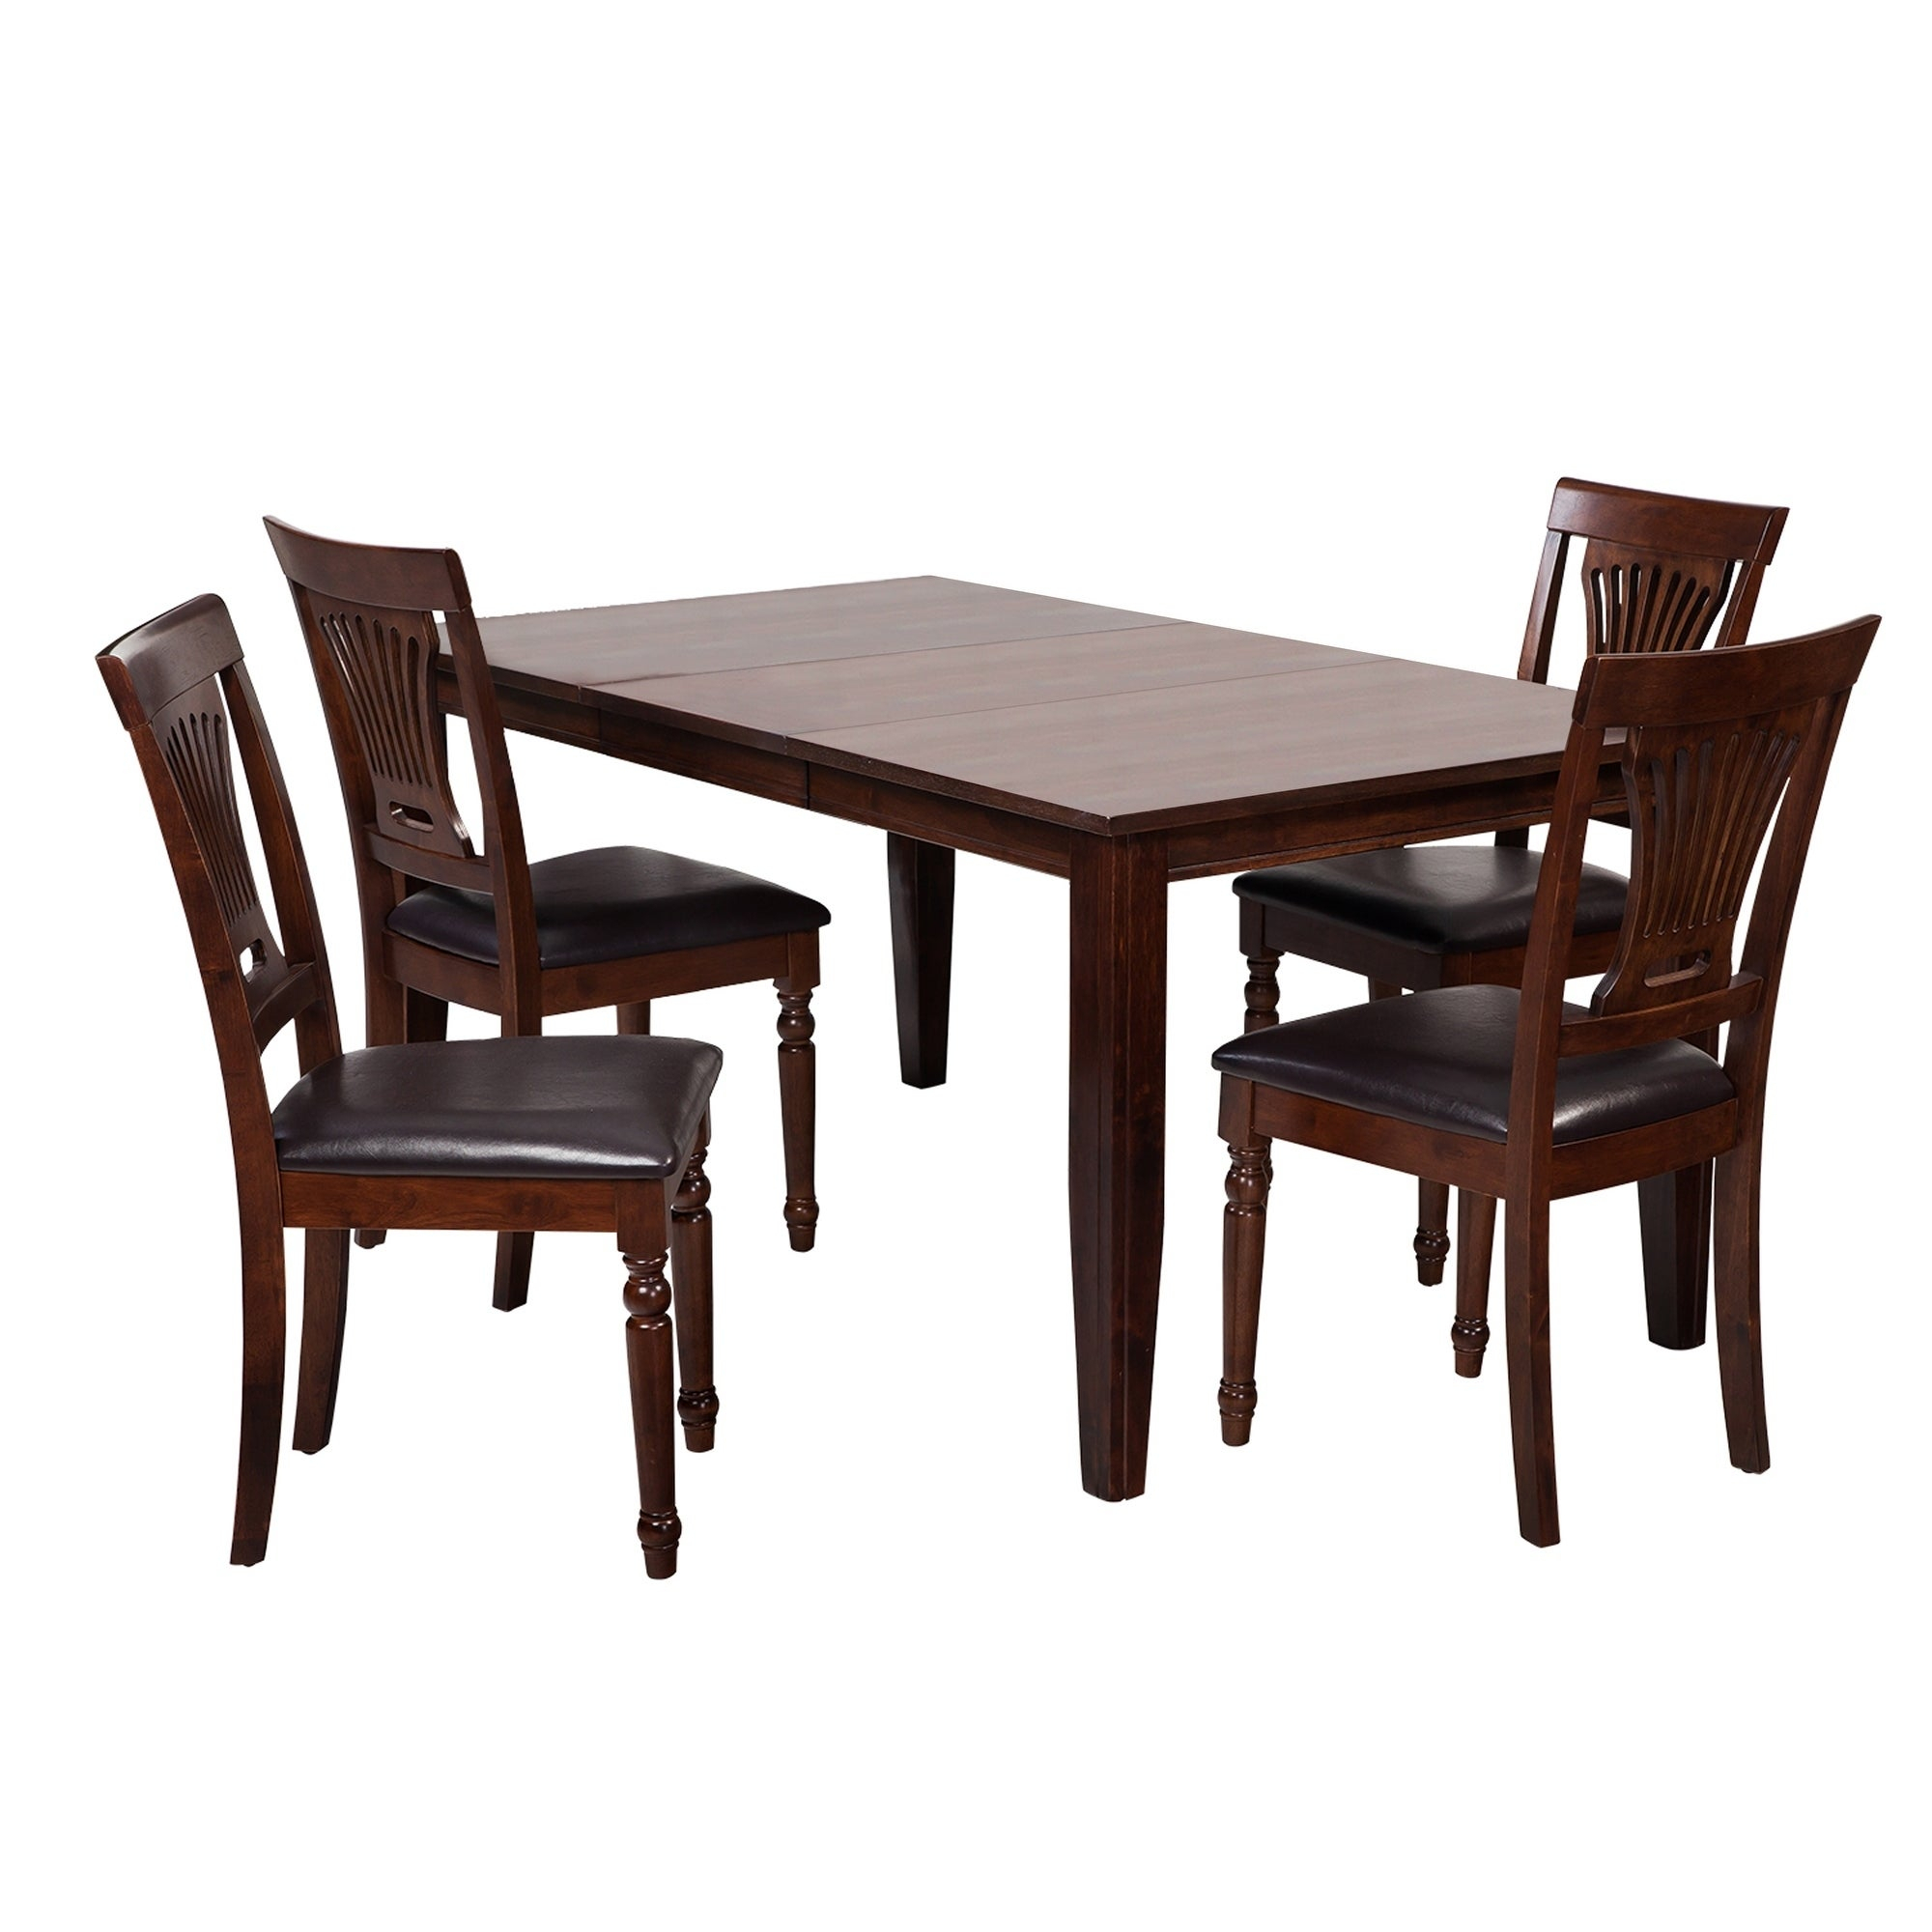 "5 Piece Solid Wood Dining Set ""aden"", Modern Kitchen Table Set, Espresso Inside Most Popular Adan 5 Piece Solid Wood Dining Sets (Set Of 5) (Image 3 of 20)"